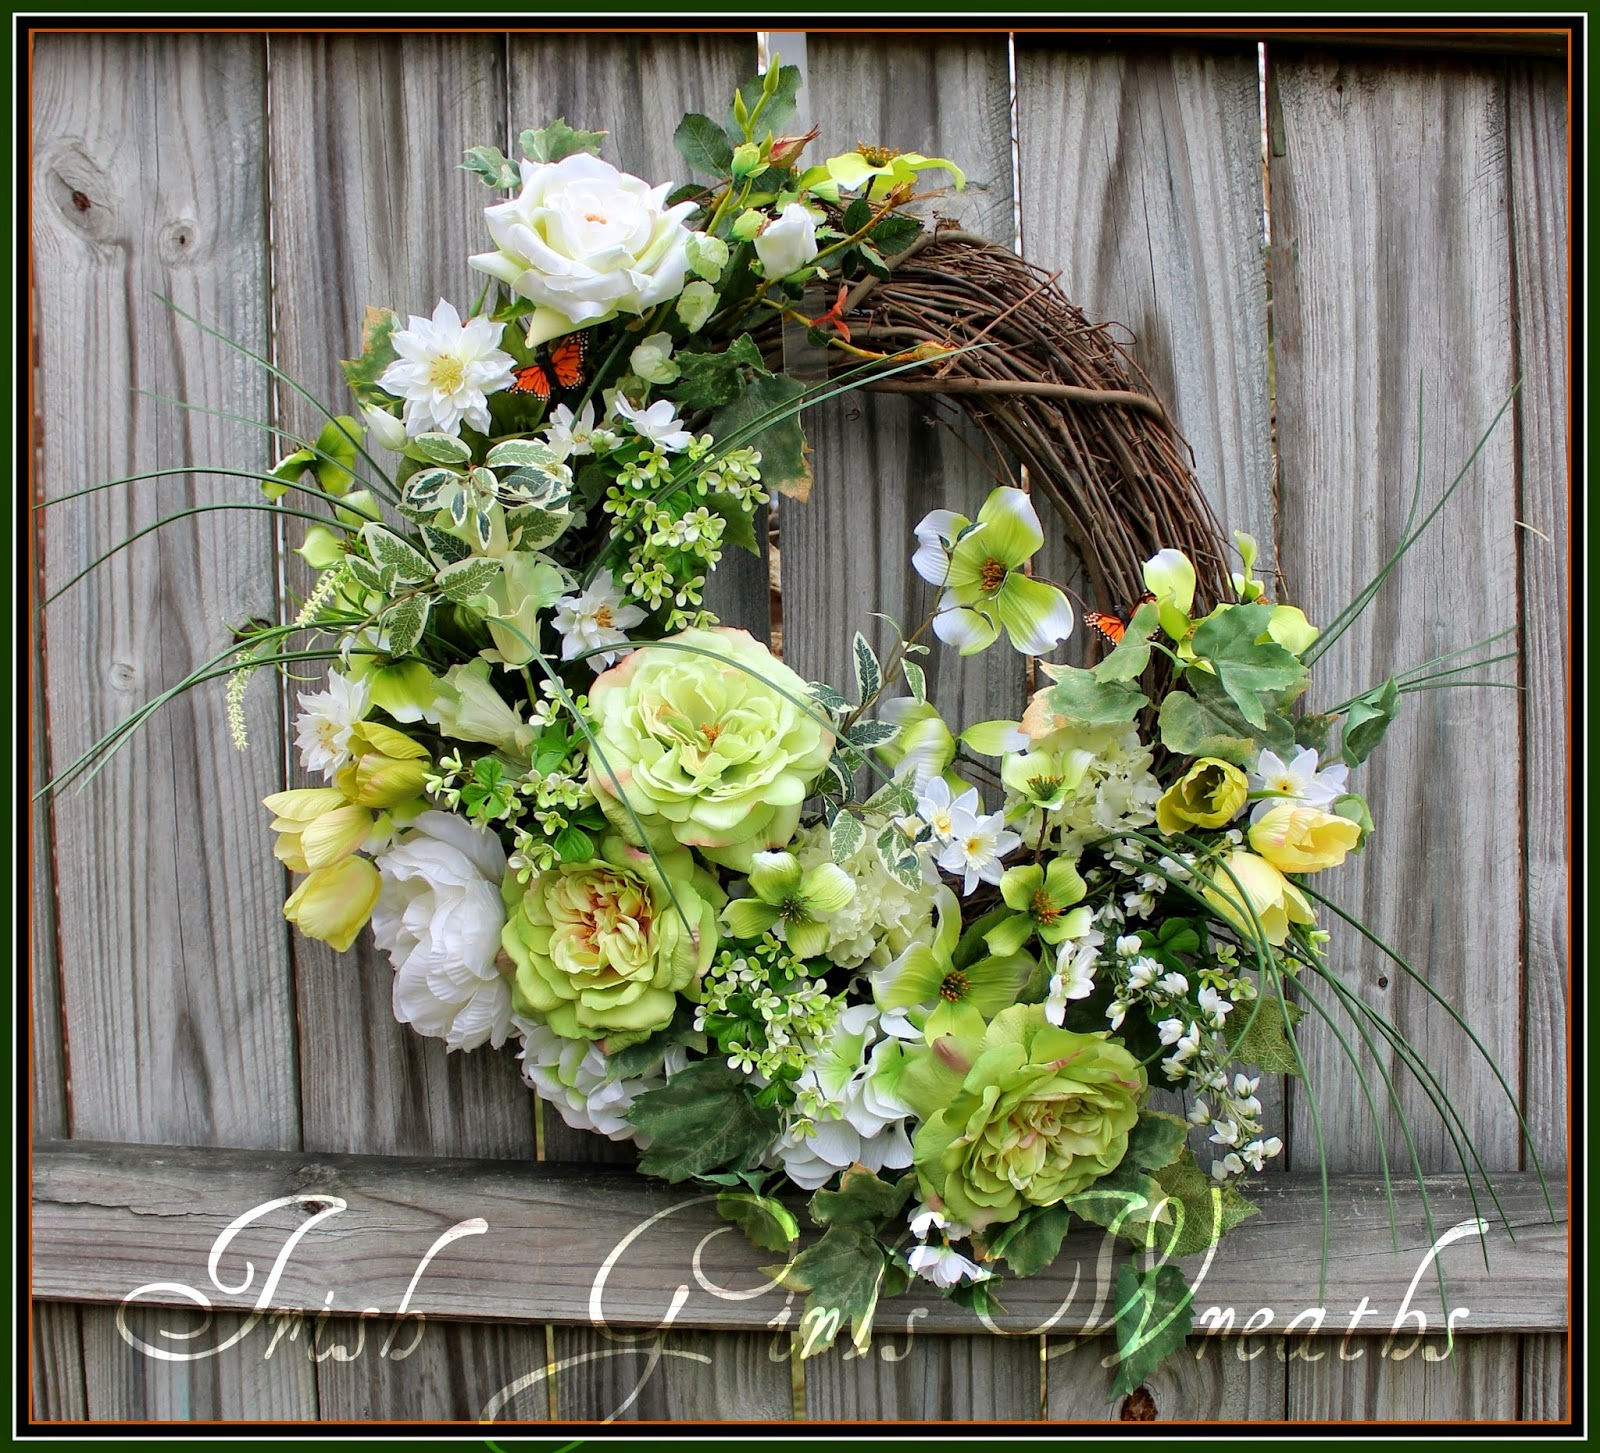 Irish Girl S Wreaths Top Quality Handmade Artisan Floral Wreaths